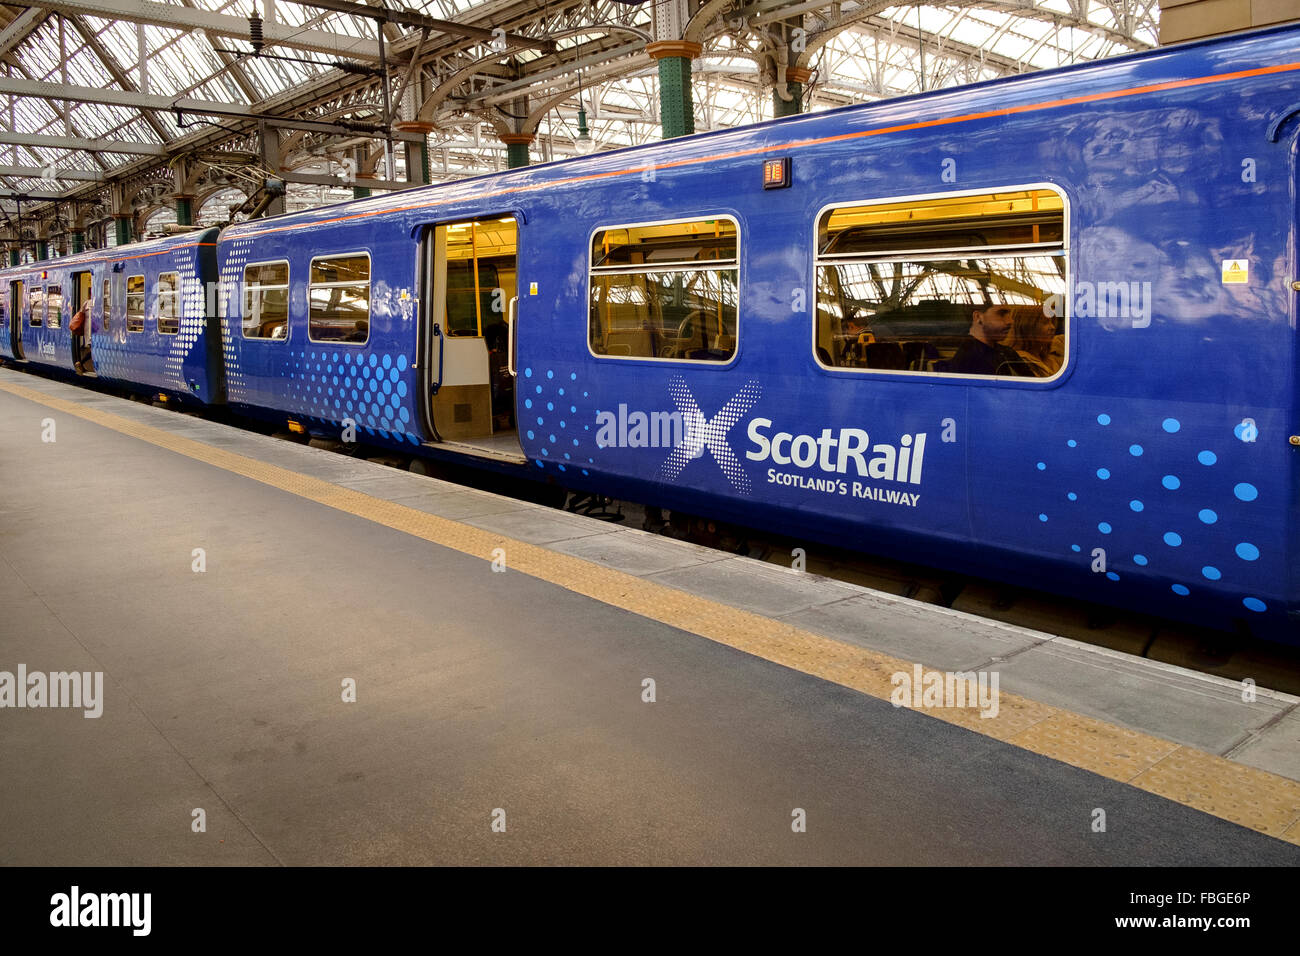 scotrail train carraige station scotland uk - Stock Image